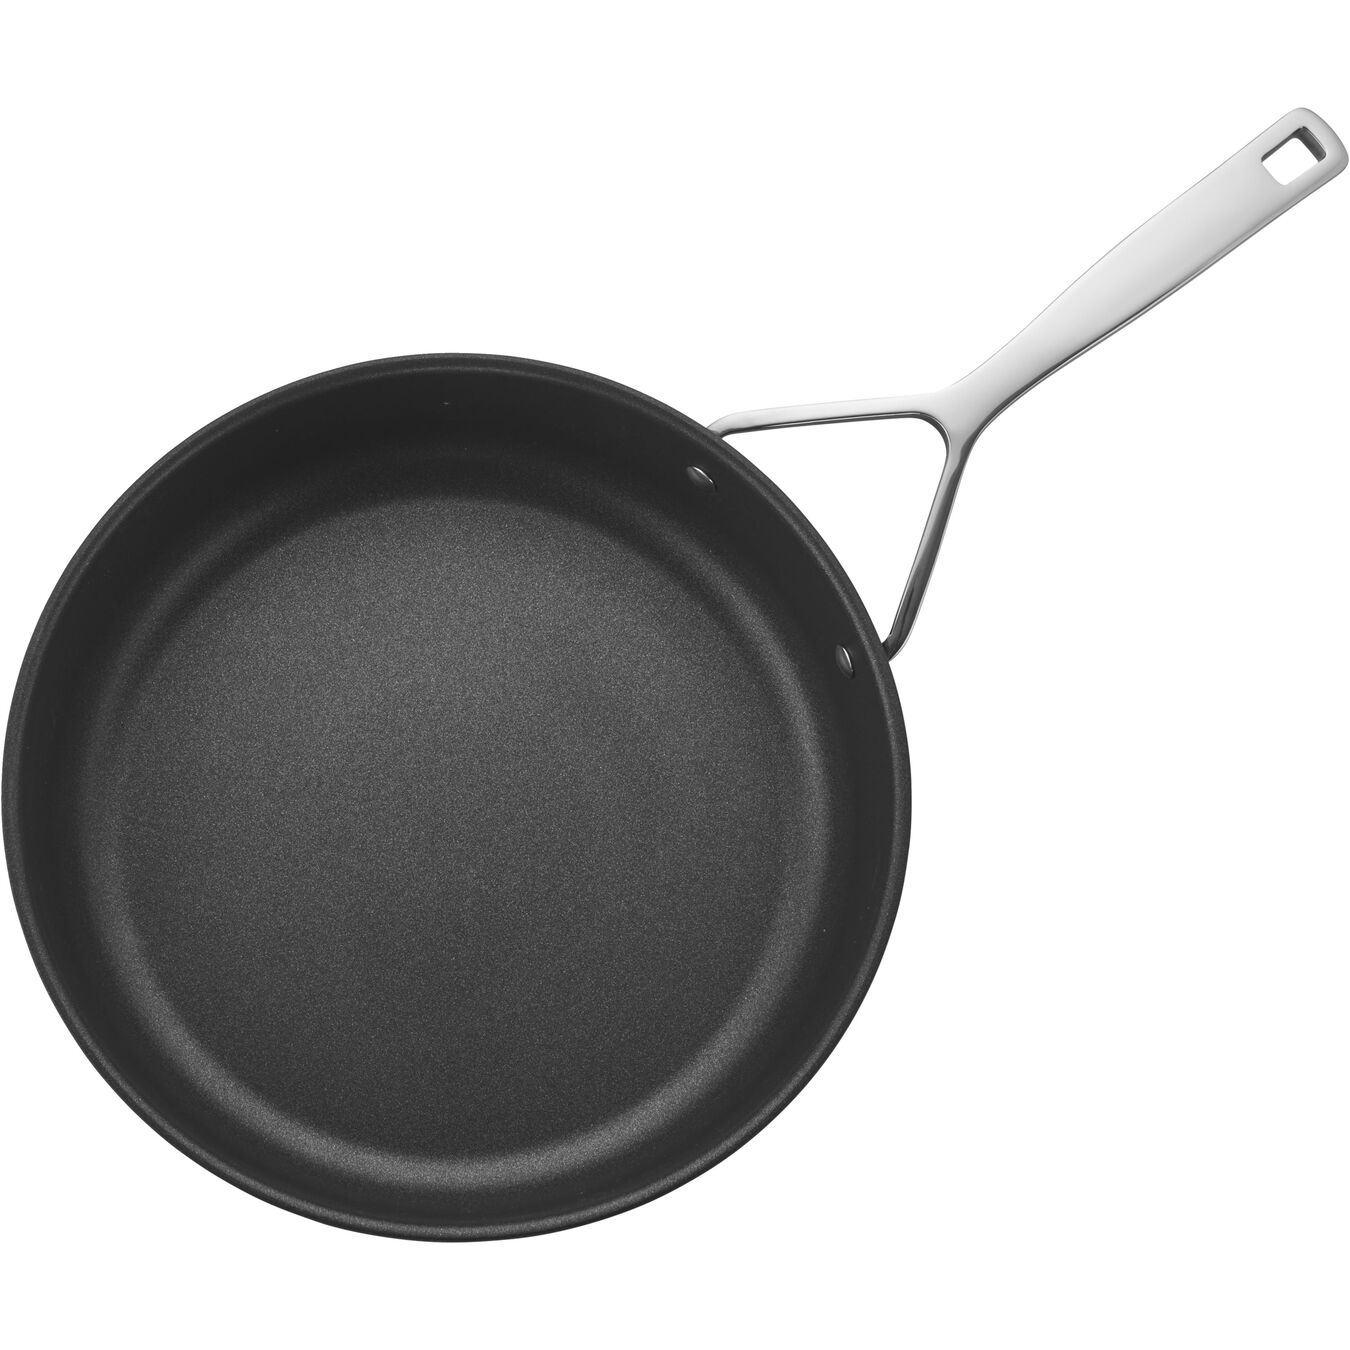 28 cm / 11 inch Aluminum Frying pan high-sided,,large 3